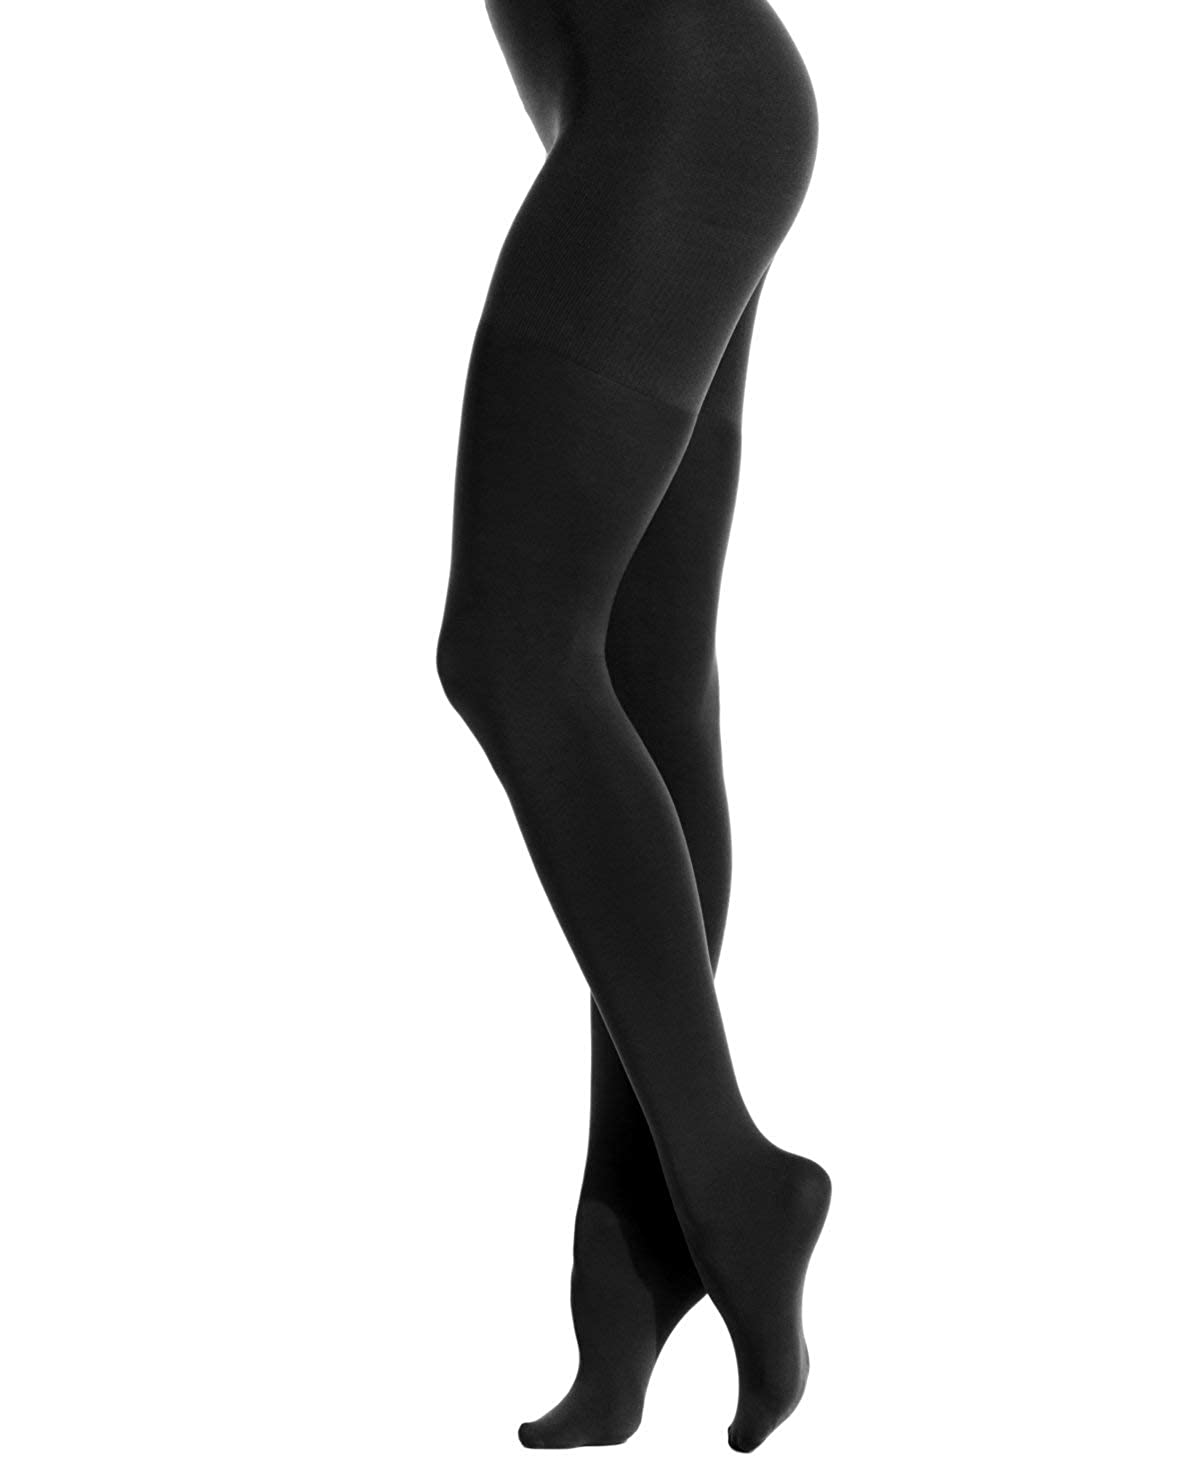 f97a247ab82de7 Spanx Tight End Tights High Waisted Body Shaping Tights: Amazon.ca:  Clothing & Accessories